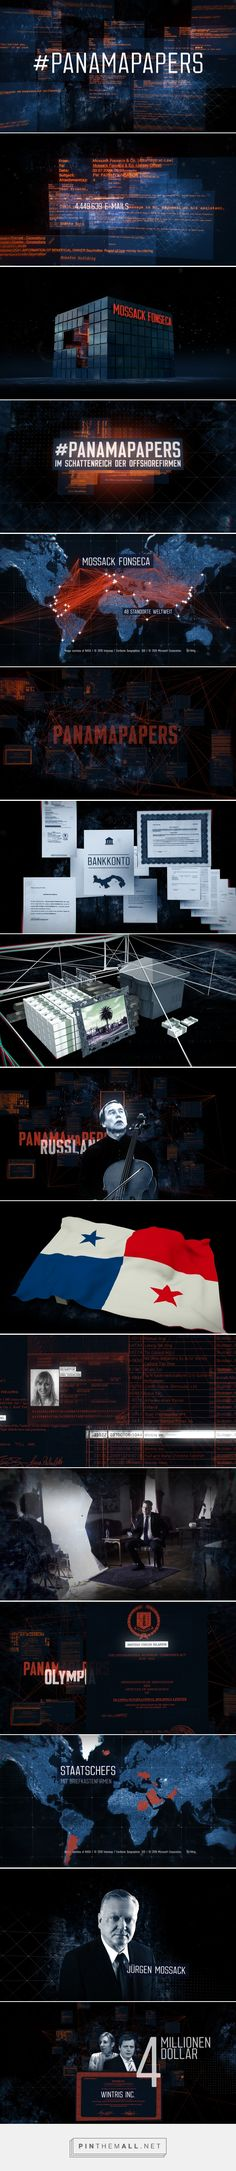 #PanamaPapers: Graphics and Animations on Behance - created via https://pinthemall.net